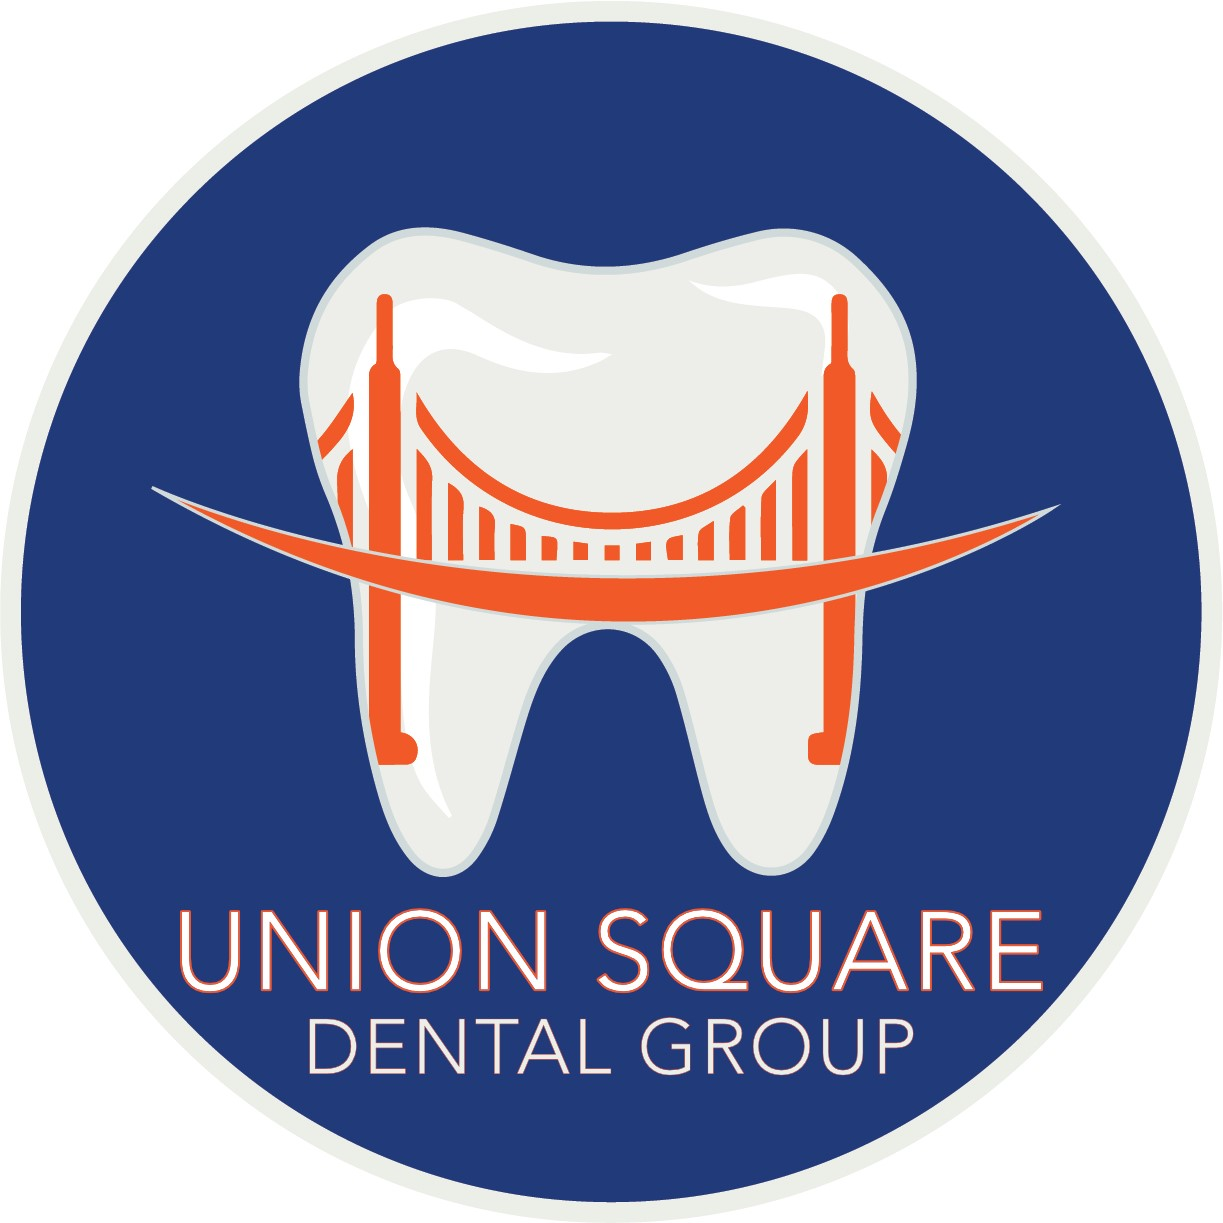 Union Square Dental Group